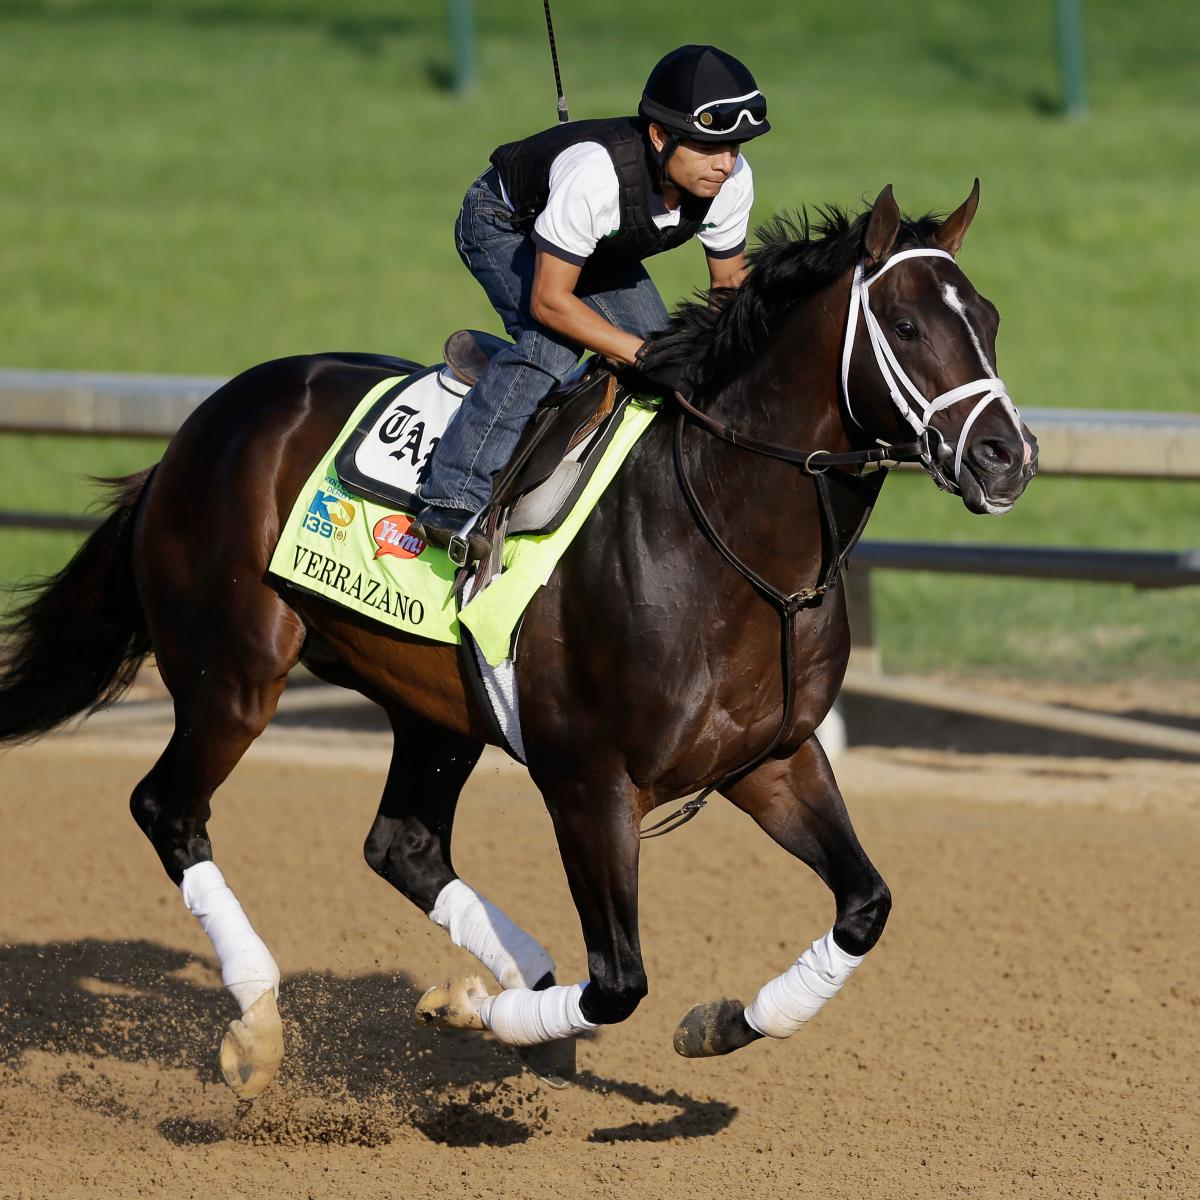 kentucky derby field 2013 top contenders and trainers in this year 39 s race bleacher report